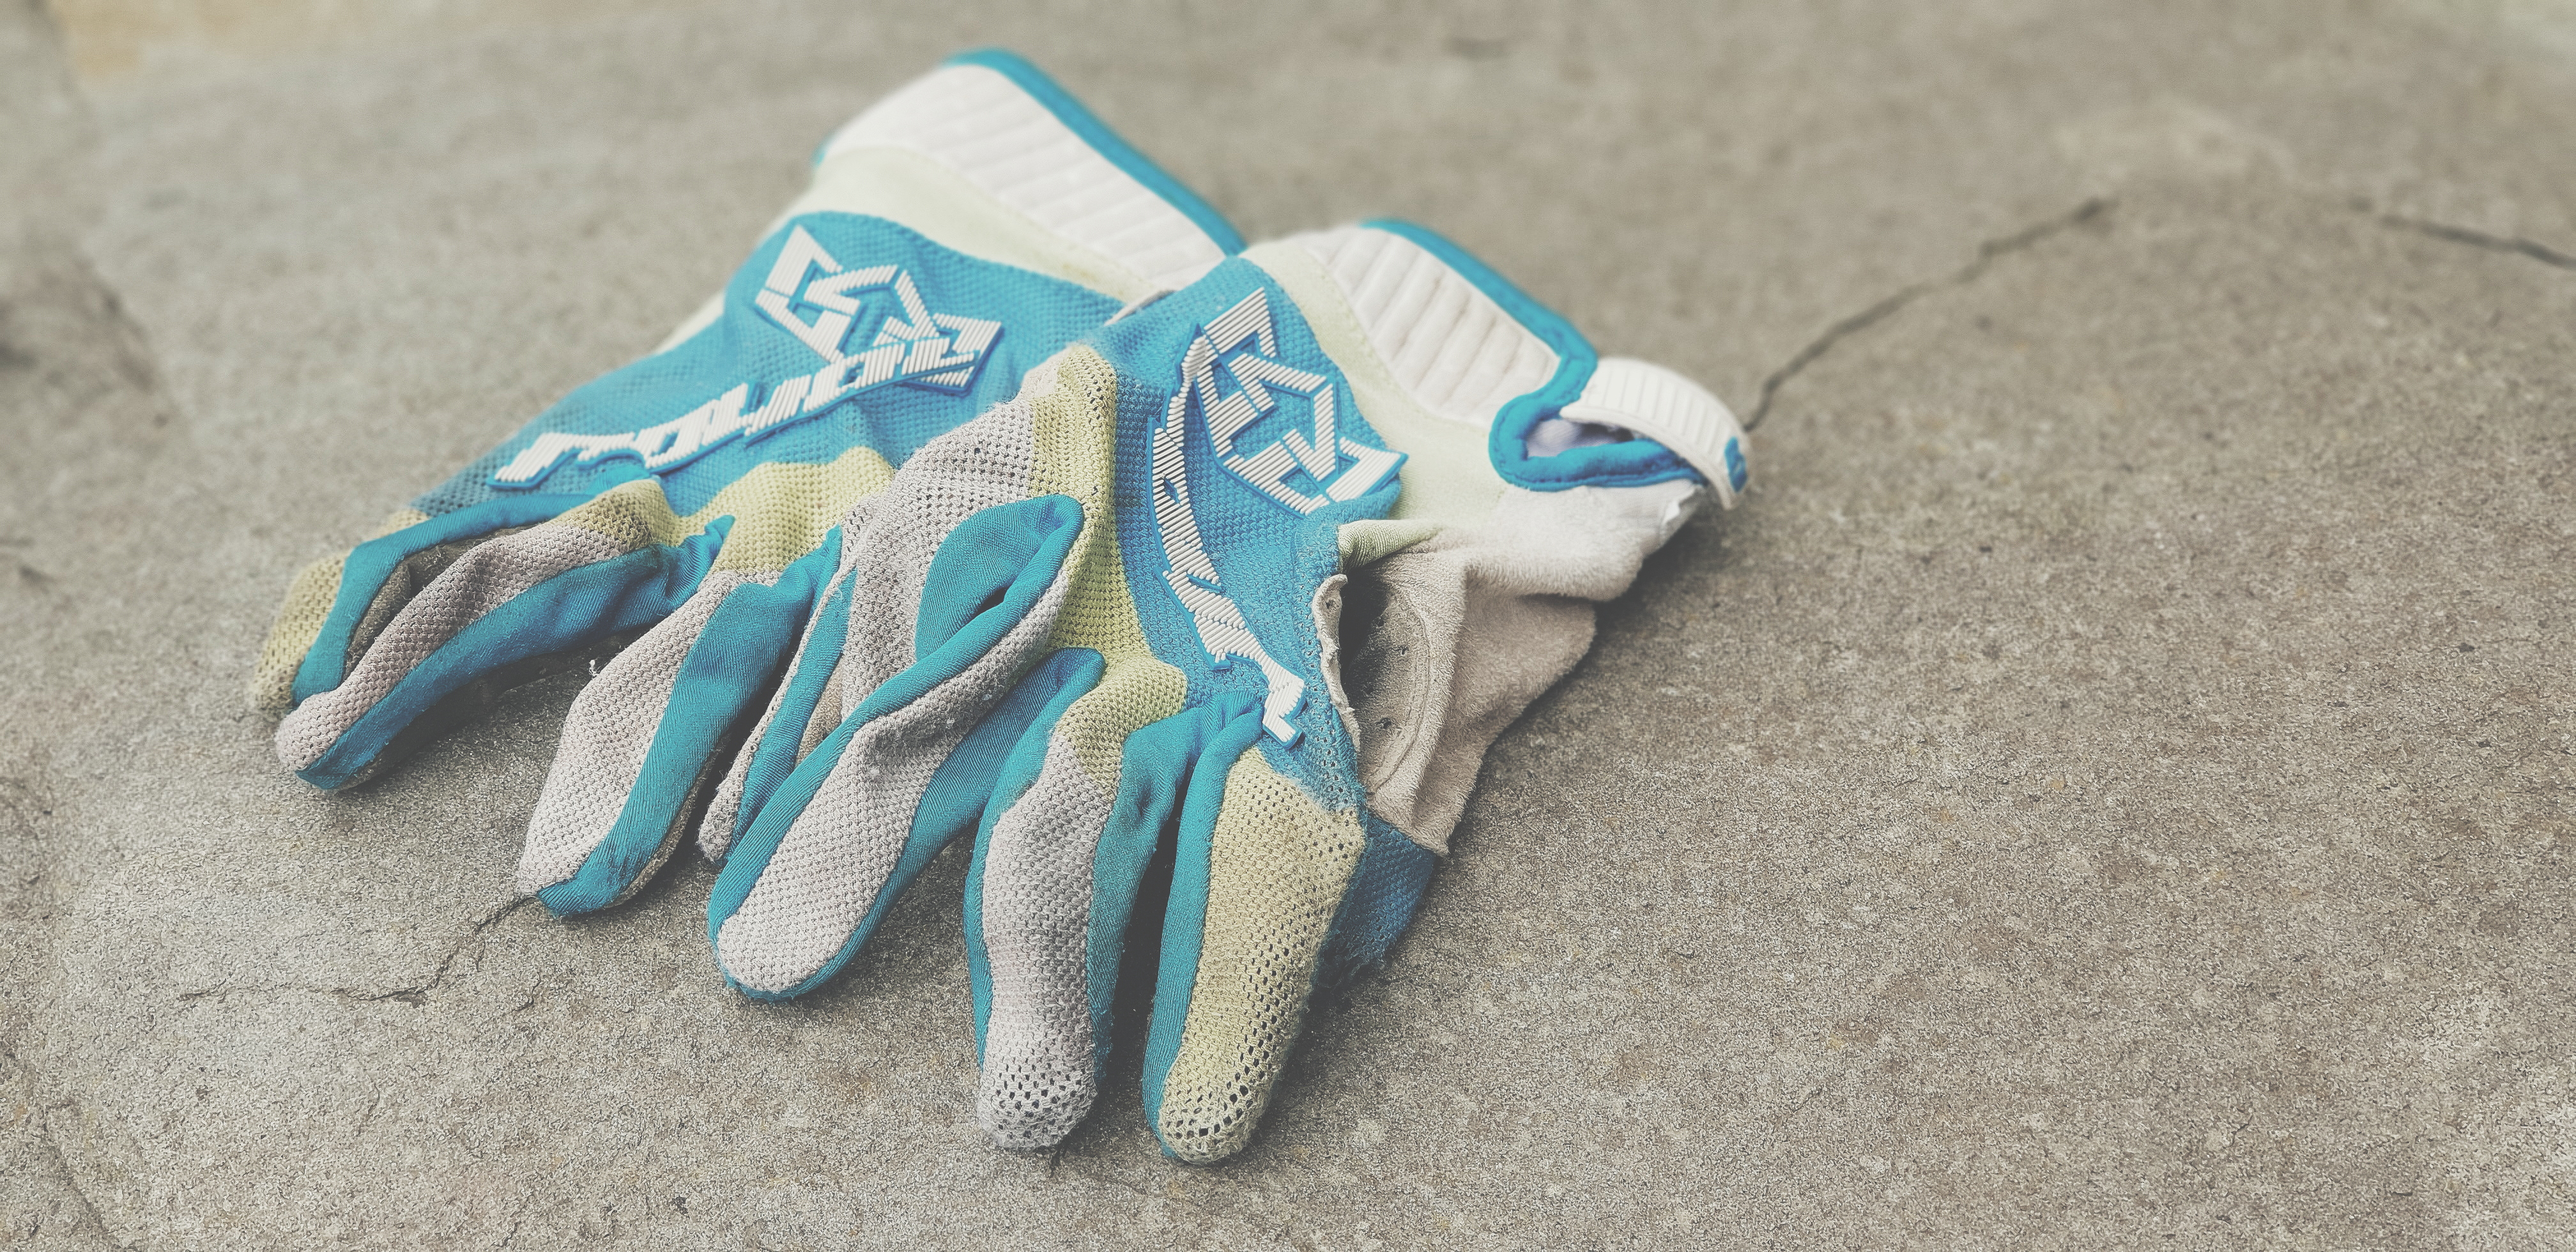 Royal-Victory-Gloves-long-term-review--3-